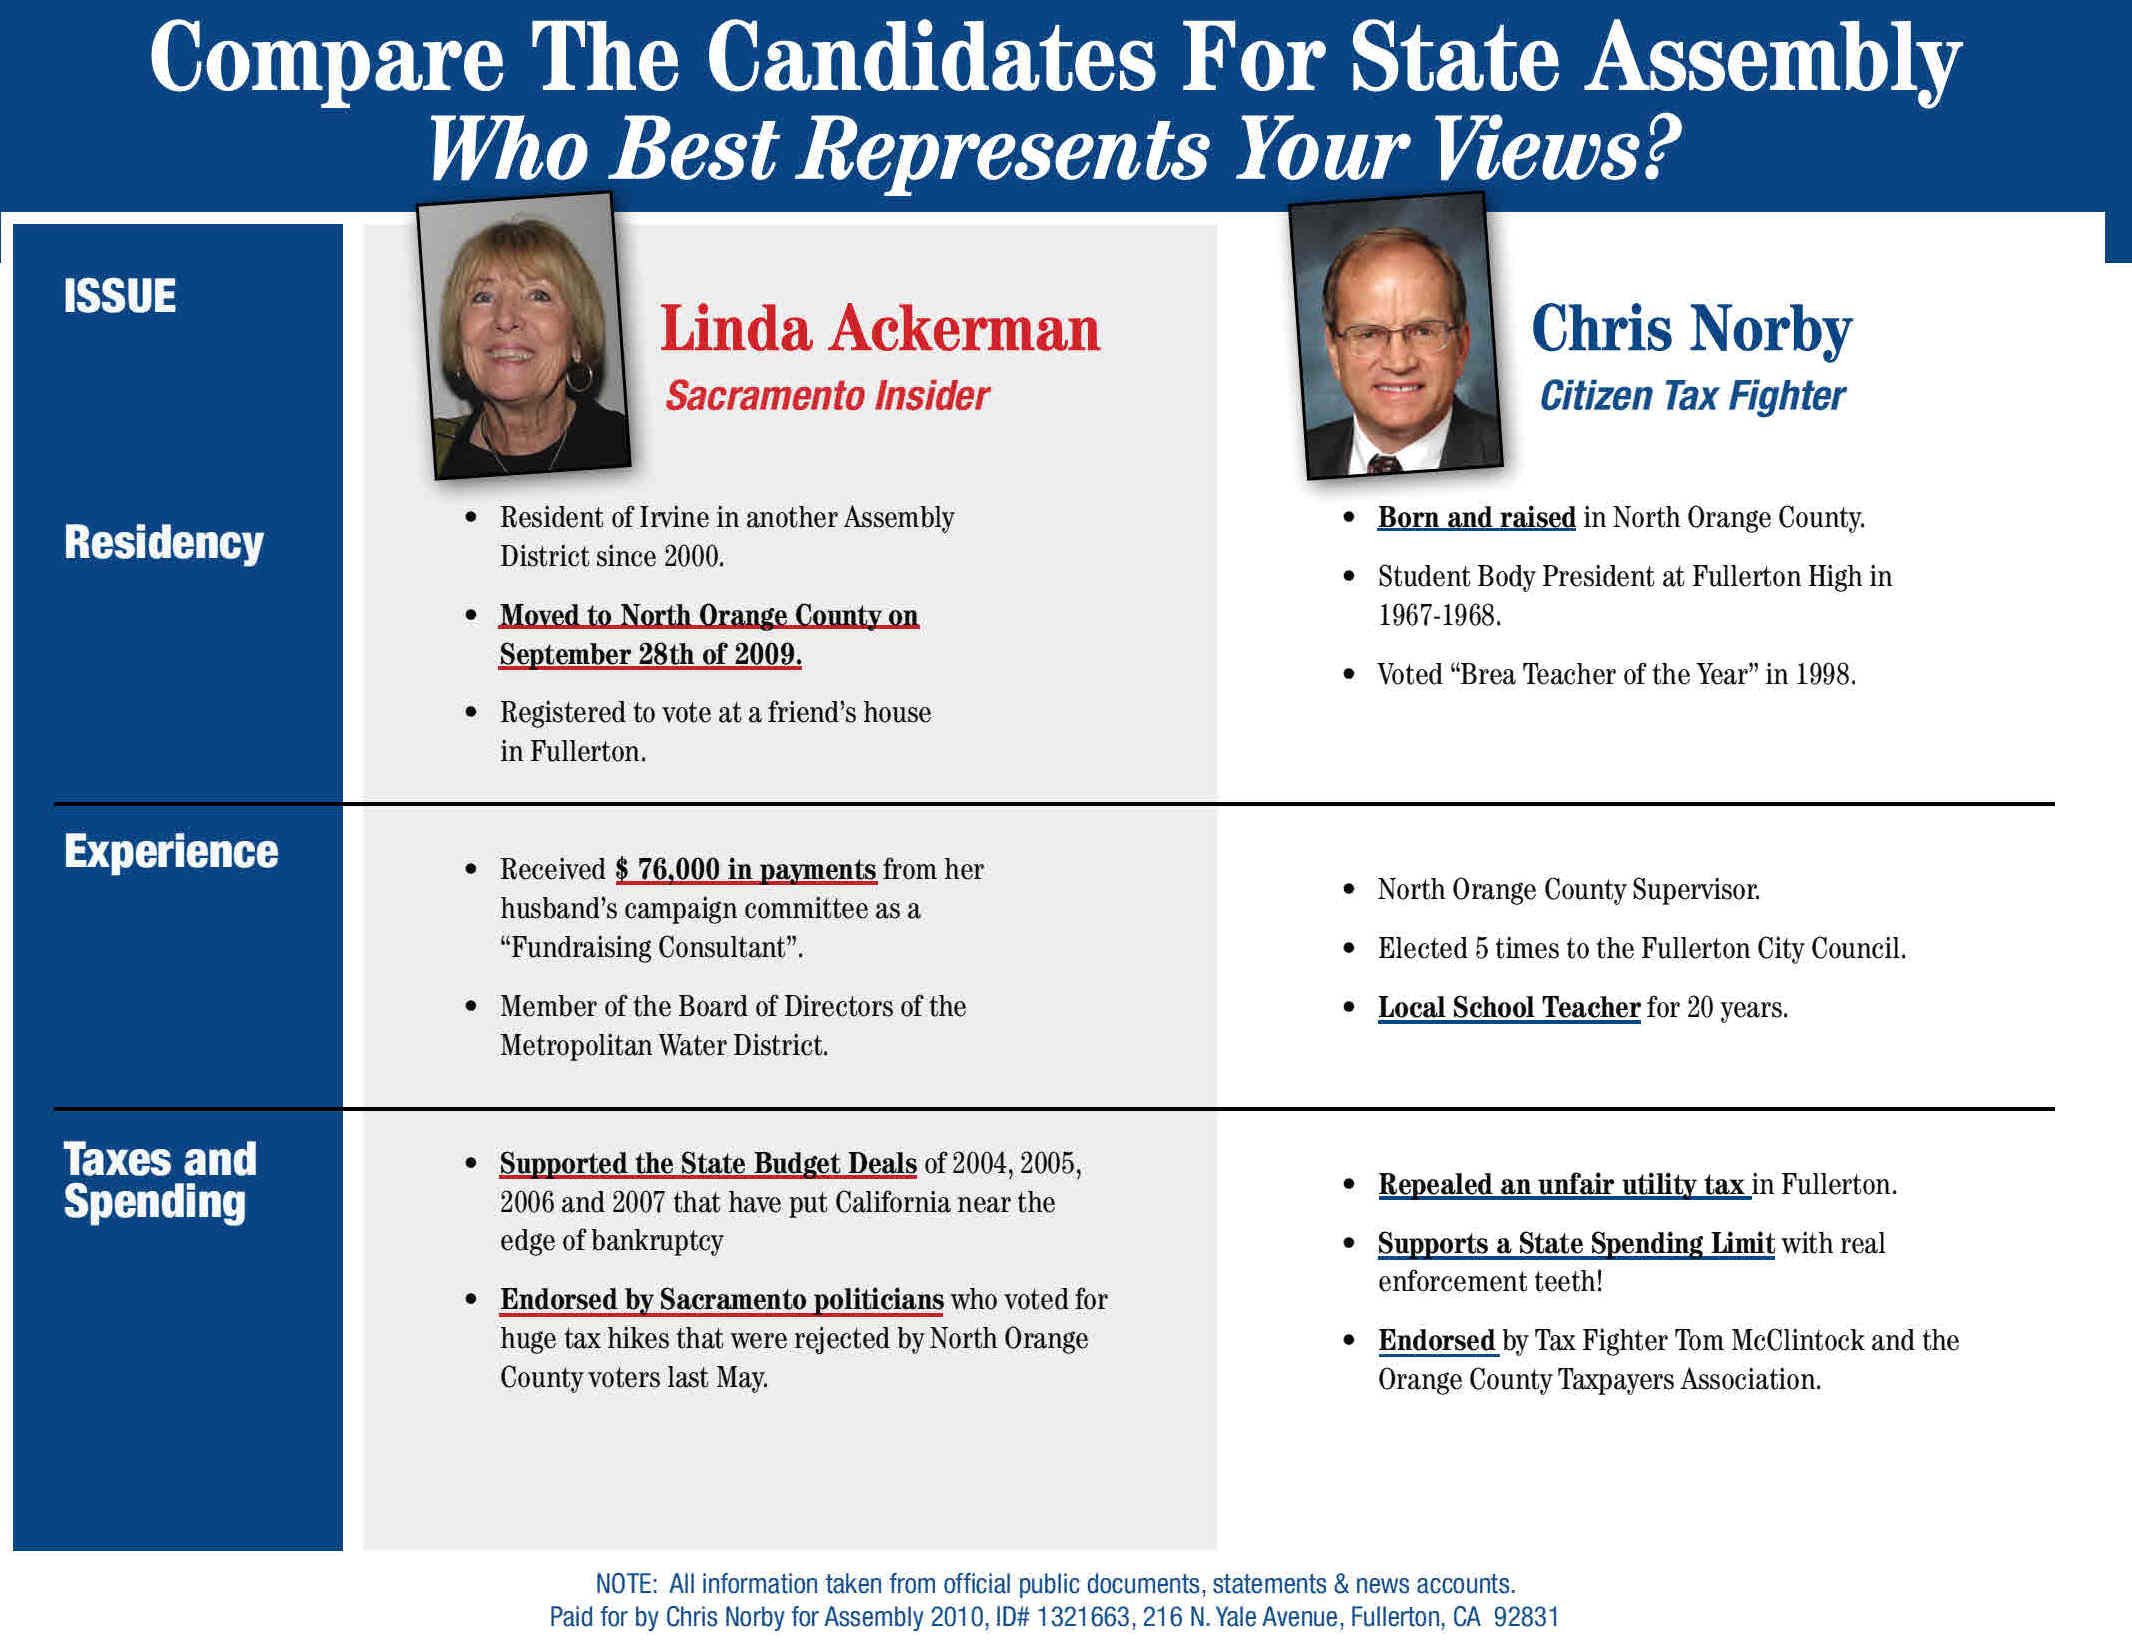 Game on! Chris Norby's campaign has commited a public service by letting the good people of the 72nd Assembly District in on a not so little secret – Linda Ackerman […]